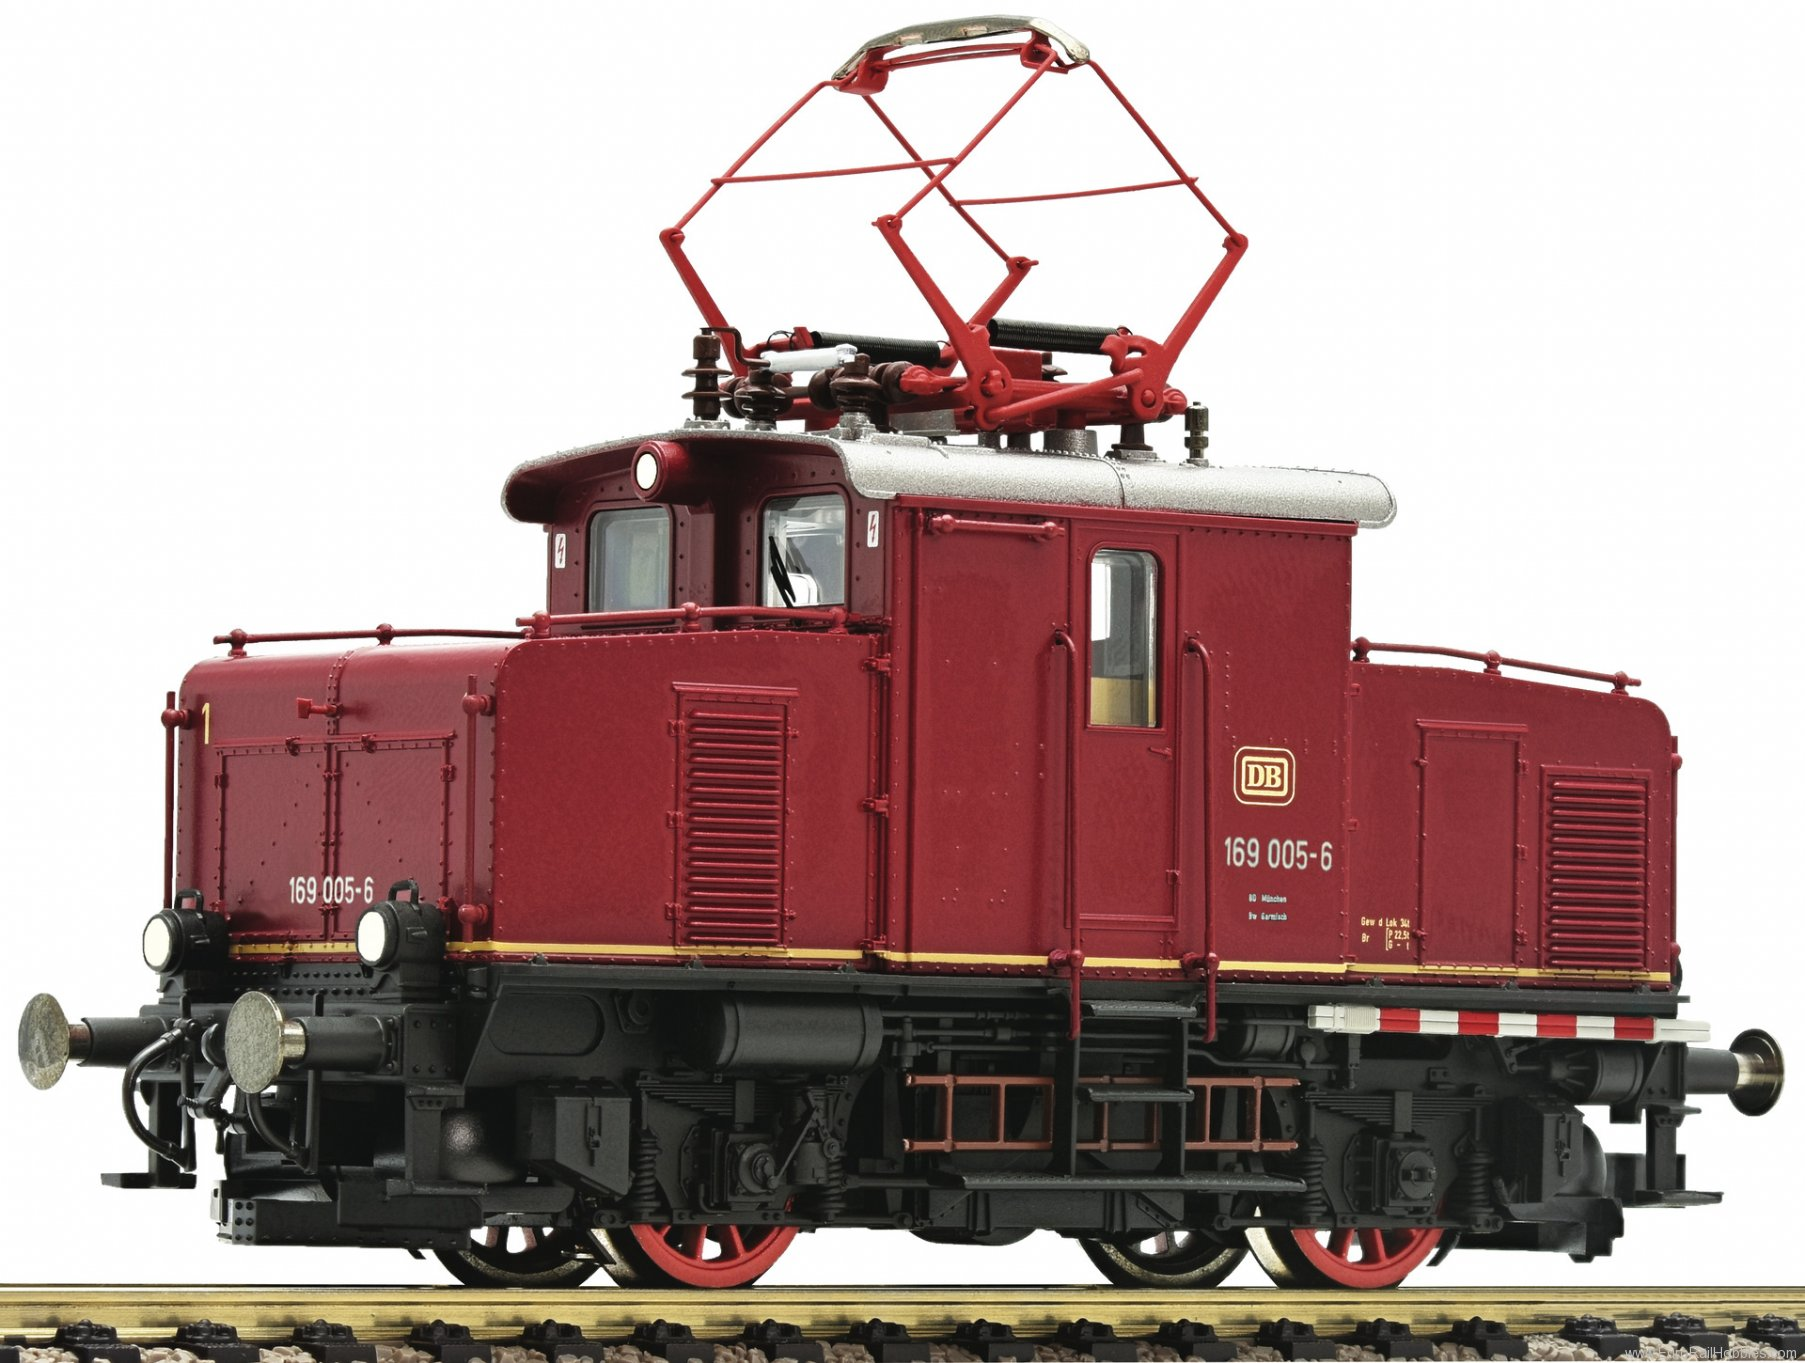 Fleischmann 390075 DB Electric locomotive 169 005-6 (Marklin AC